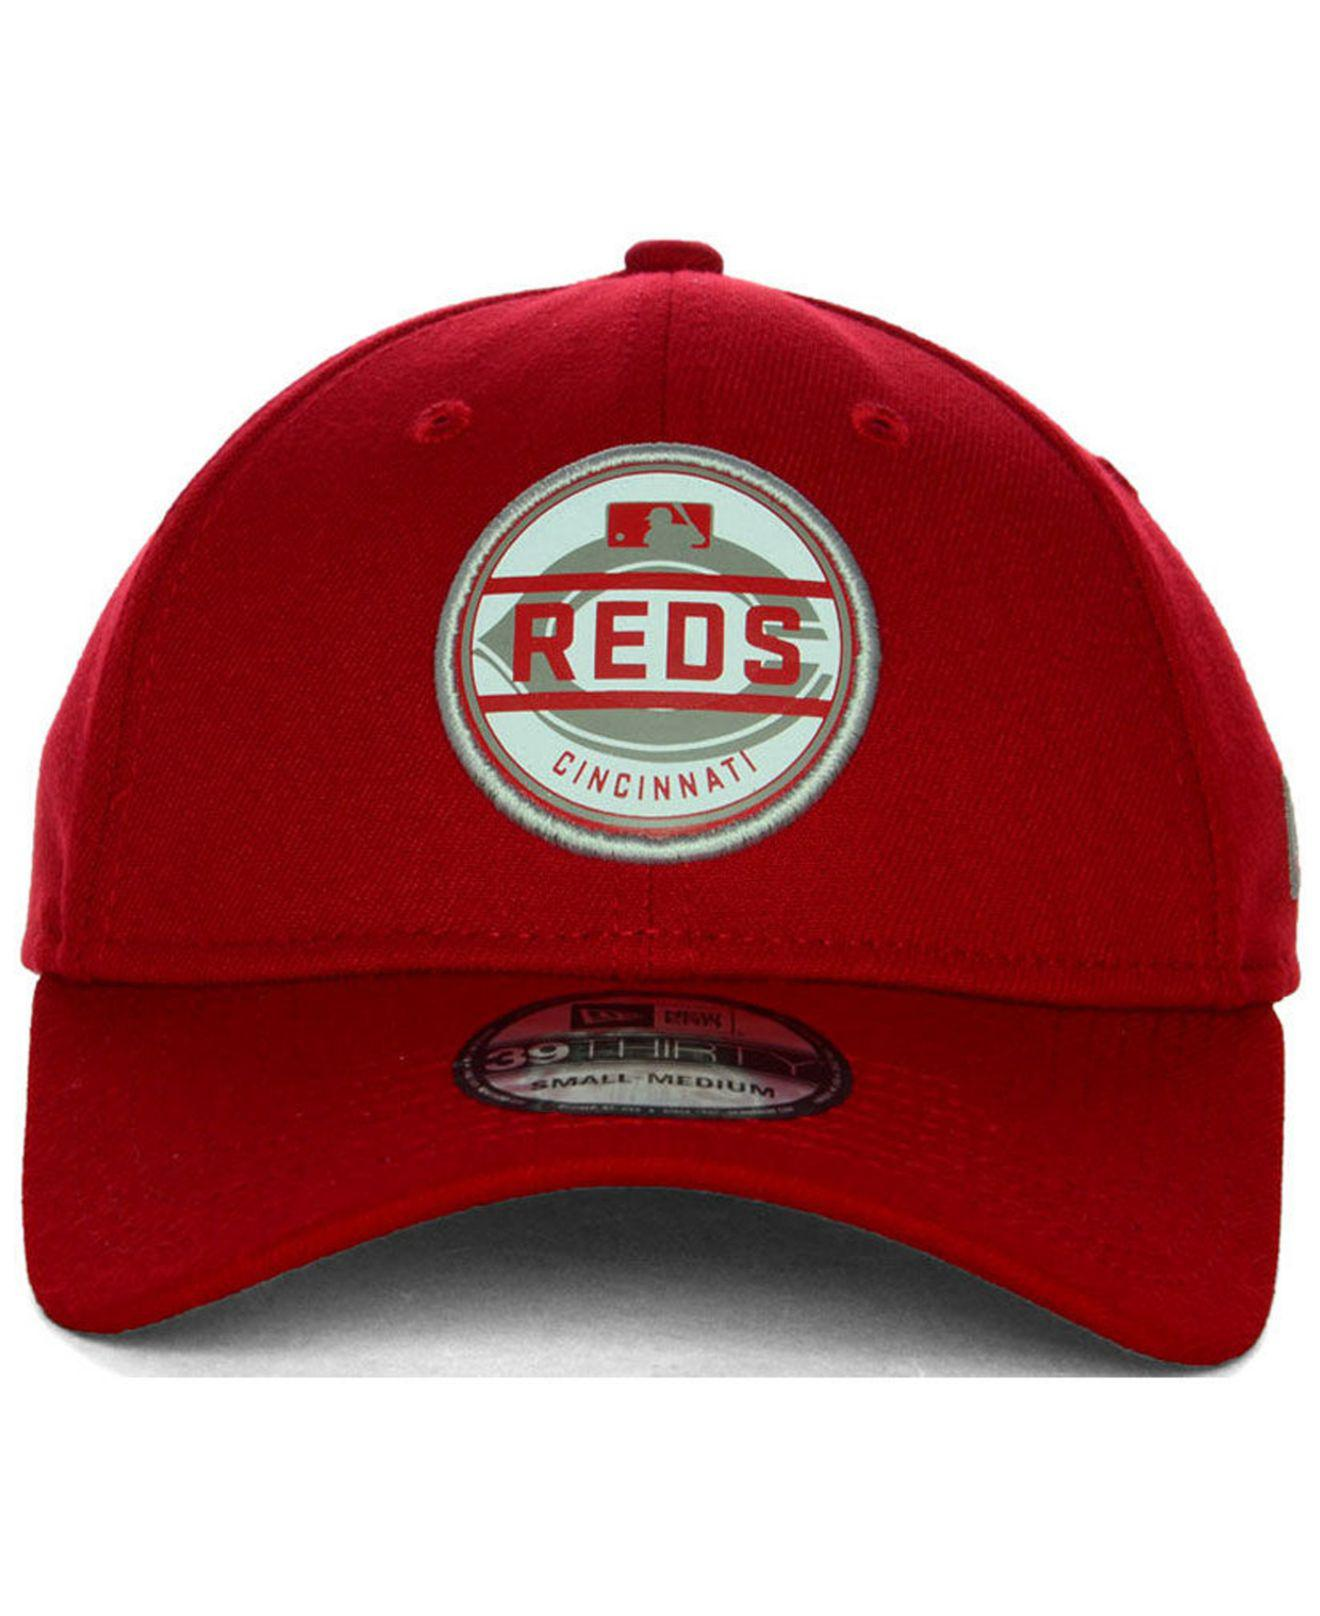 7b4f5af1 ... germany ktz cincinnati reds circle reflect 39thirty stretch fitted cap  for men lyst. view fullscreen